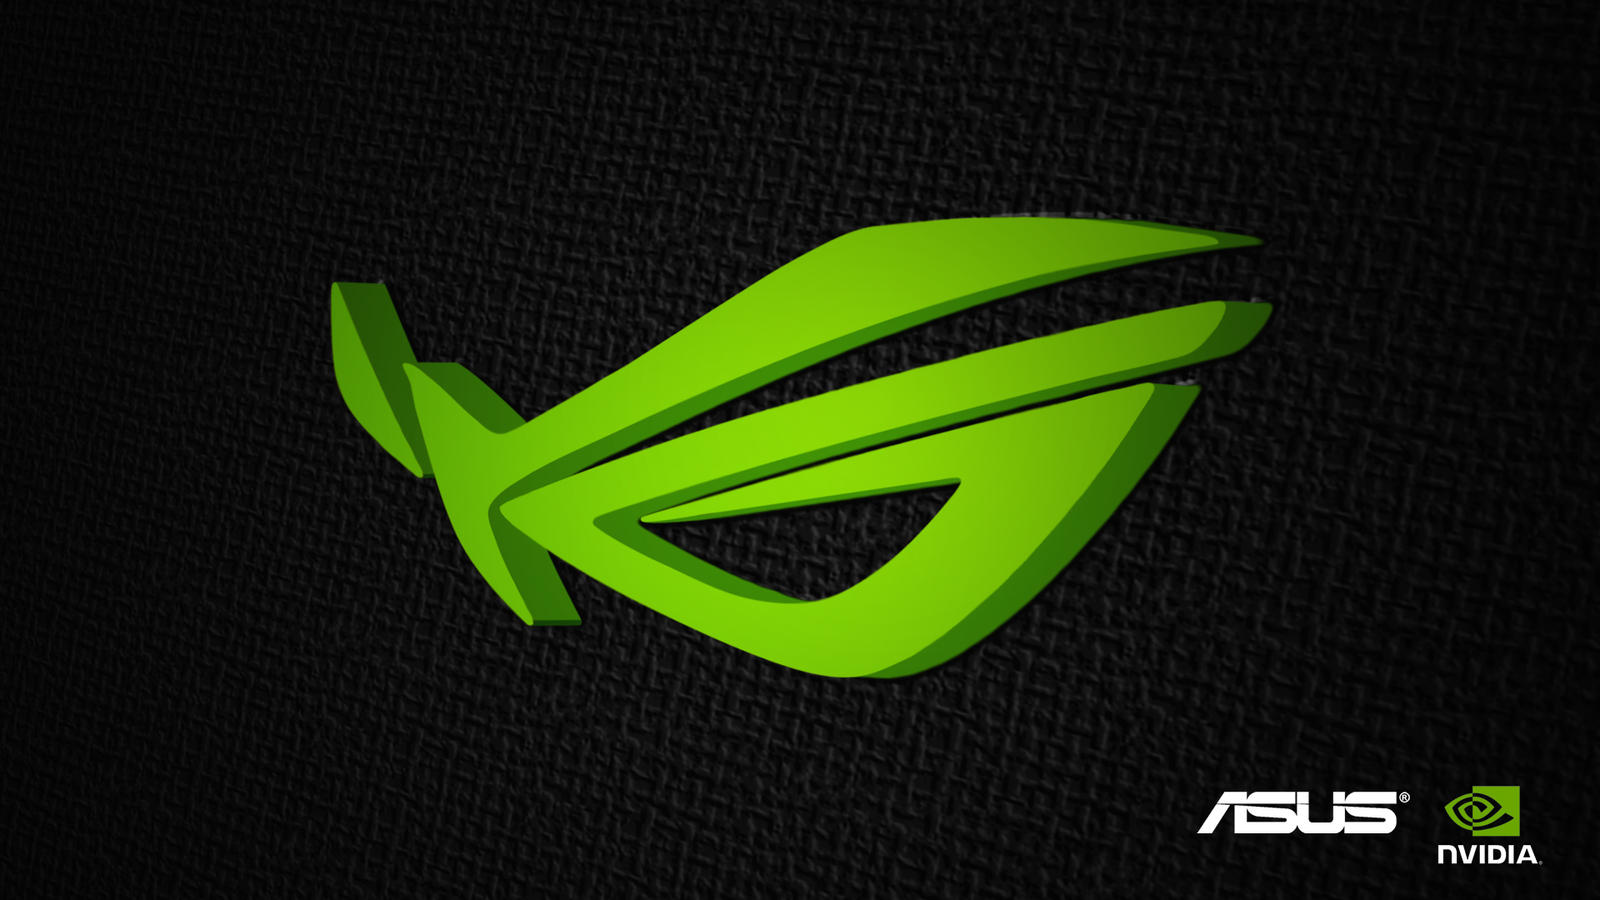 Asus Green Wallpaper: Nvidia Infused By XLiefx On DeviantArt